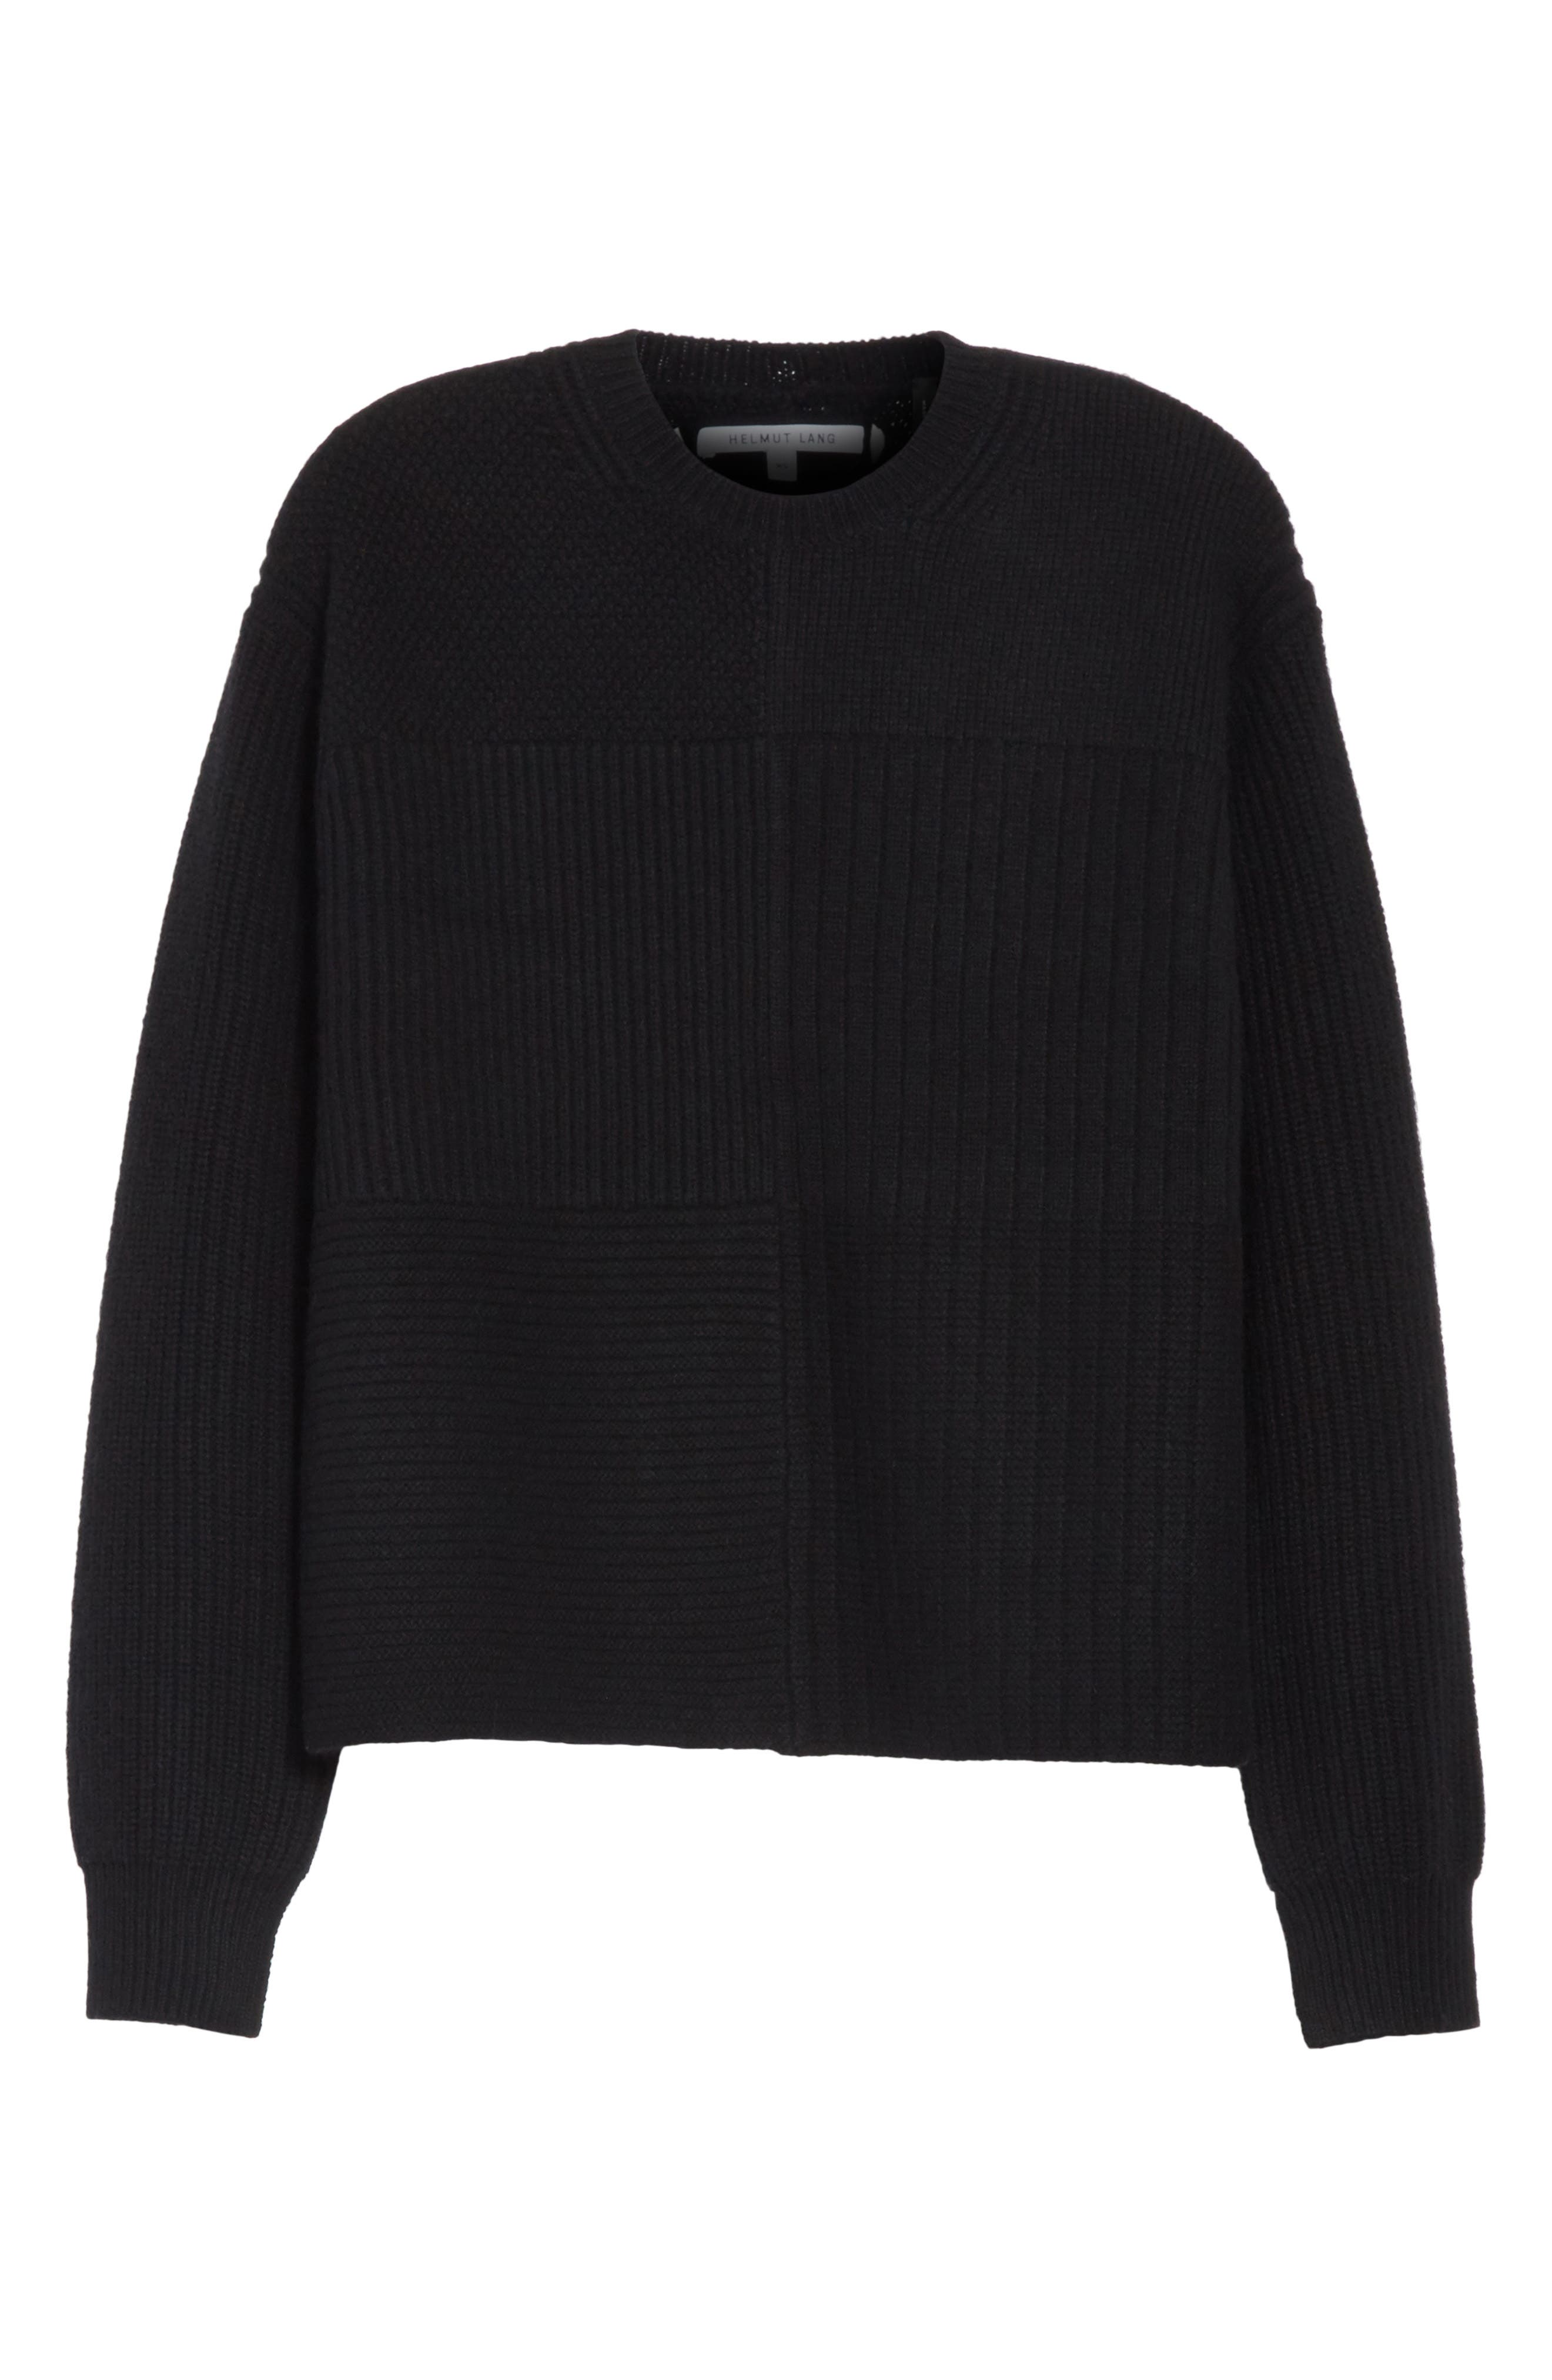 Wool Blend Textured Pullover,                             Alternate thumbnail 6, color,                             Black